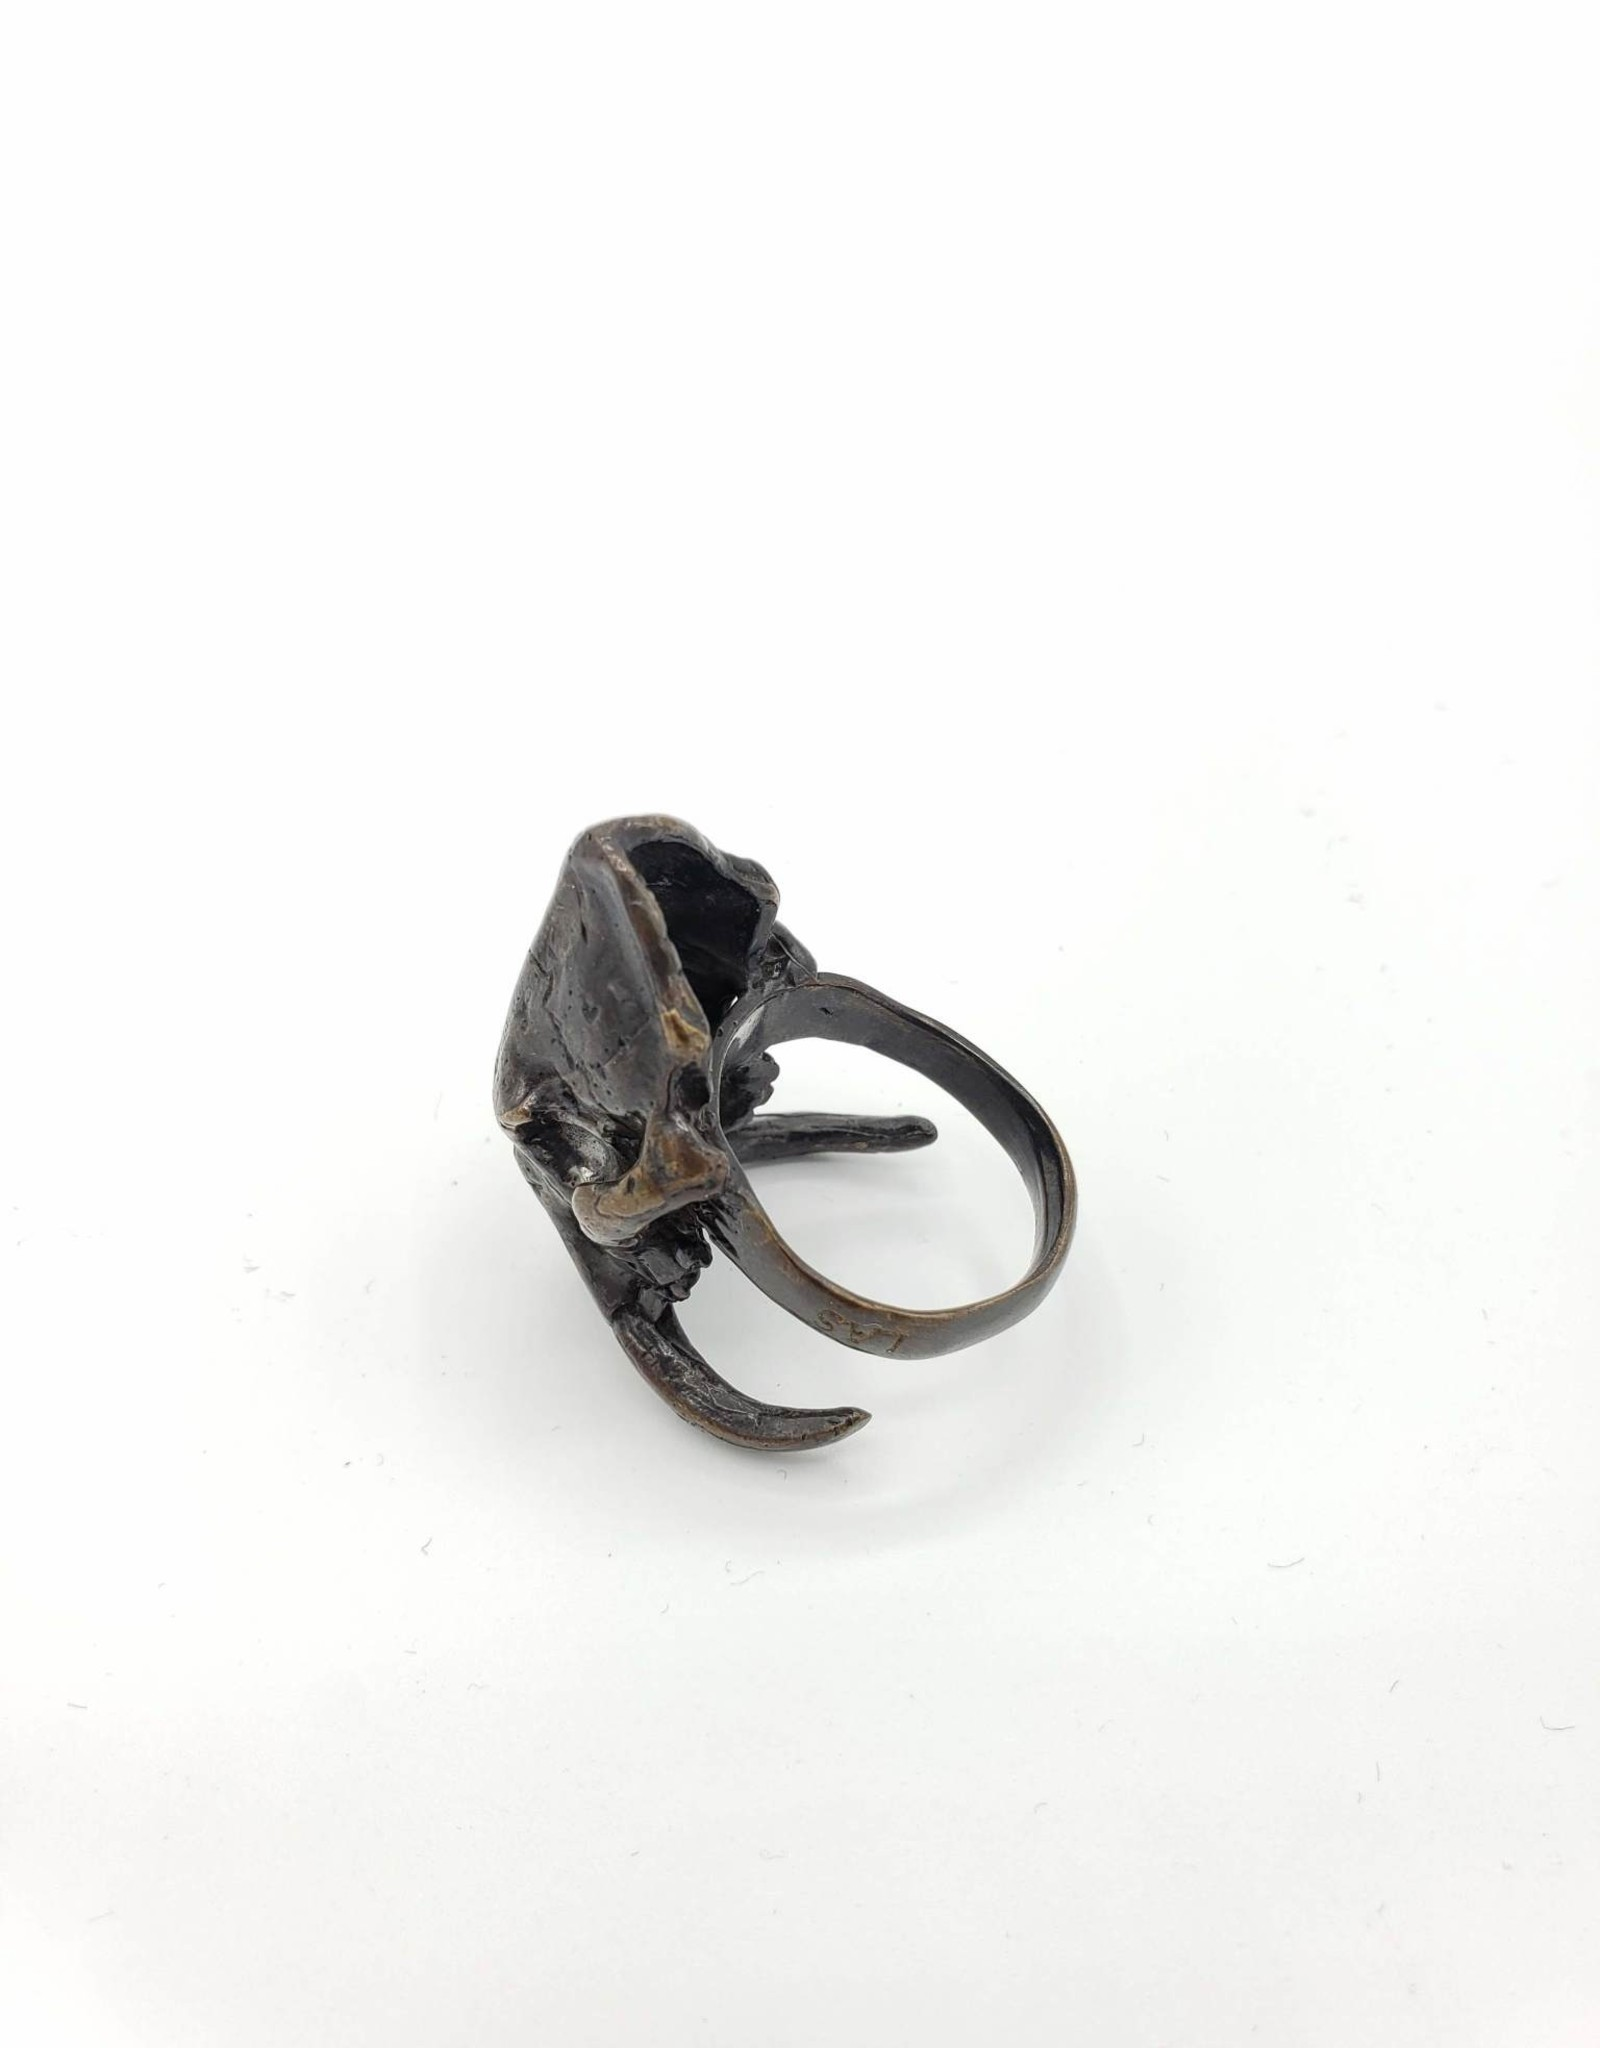 LAS Collective Sabertooth Skull Ring - Sz. 11.5 Yellow Bronze, Oxidized